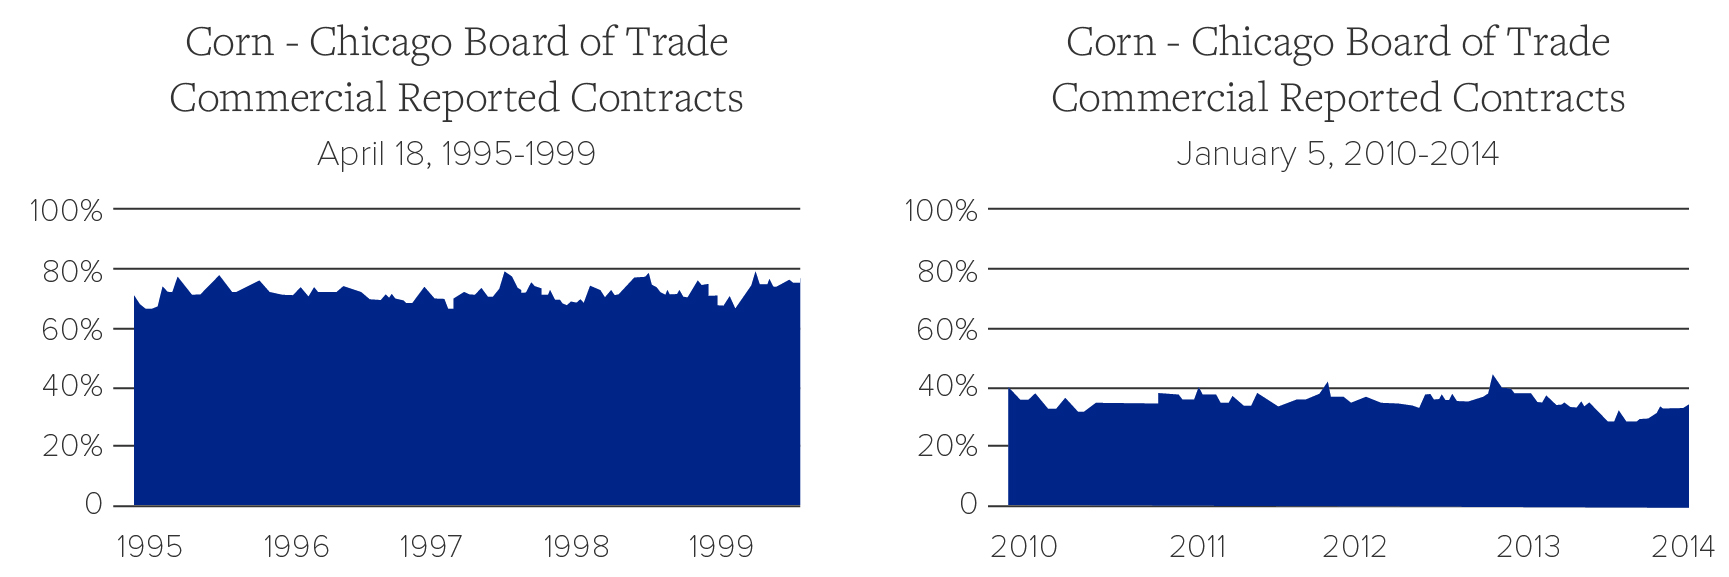 Commercial Contracts for Corn